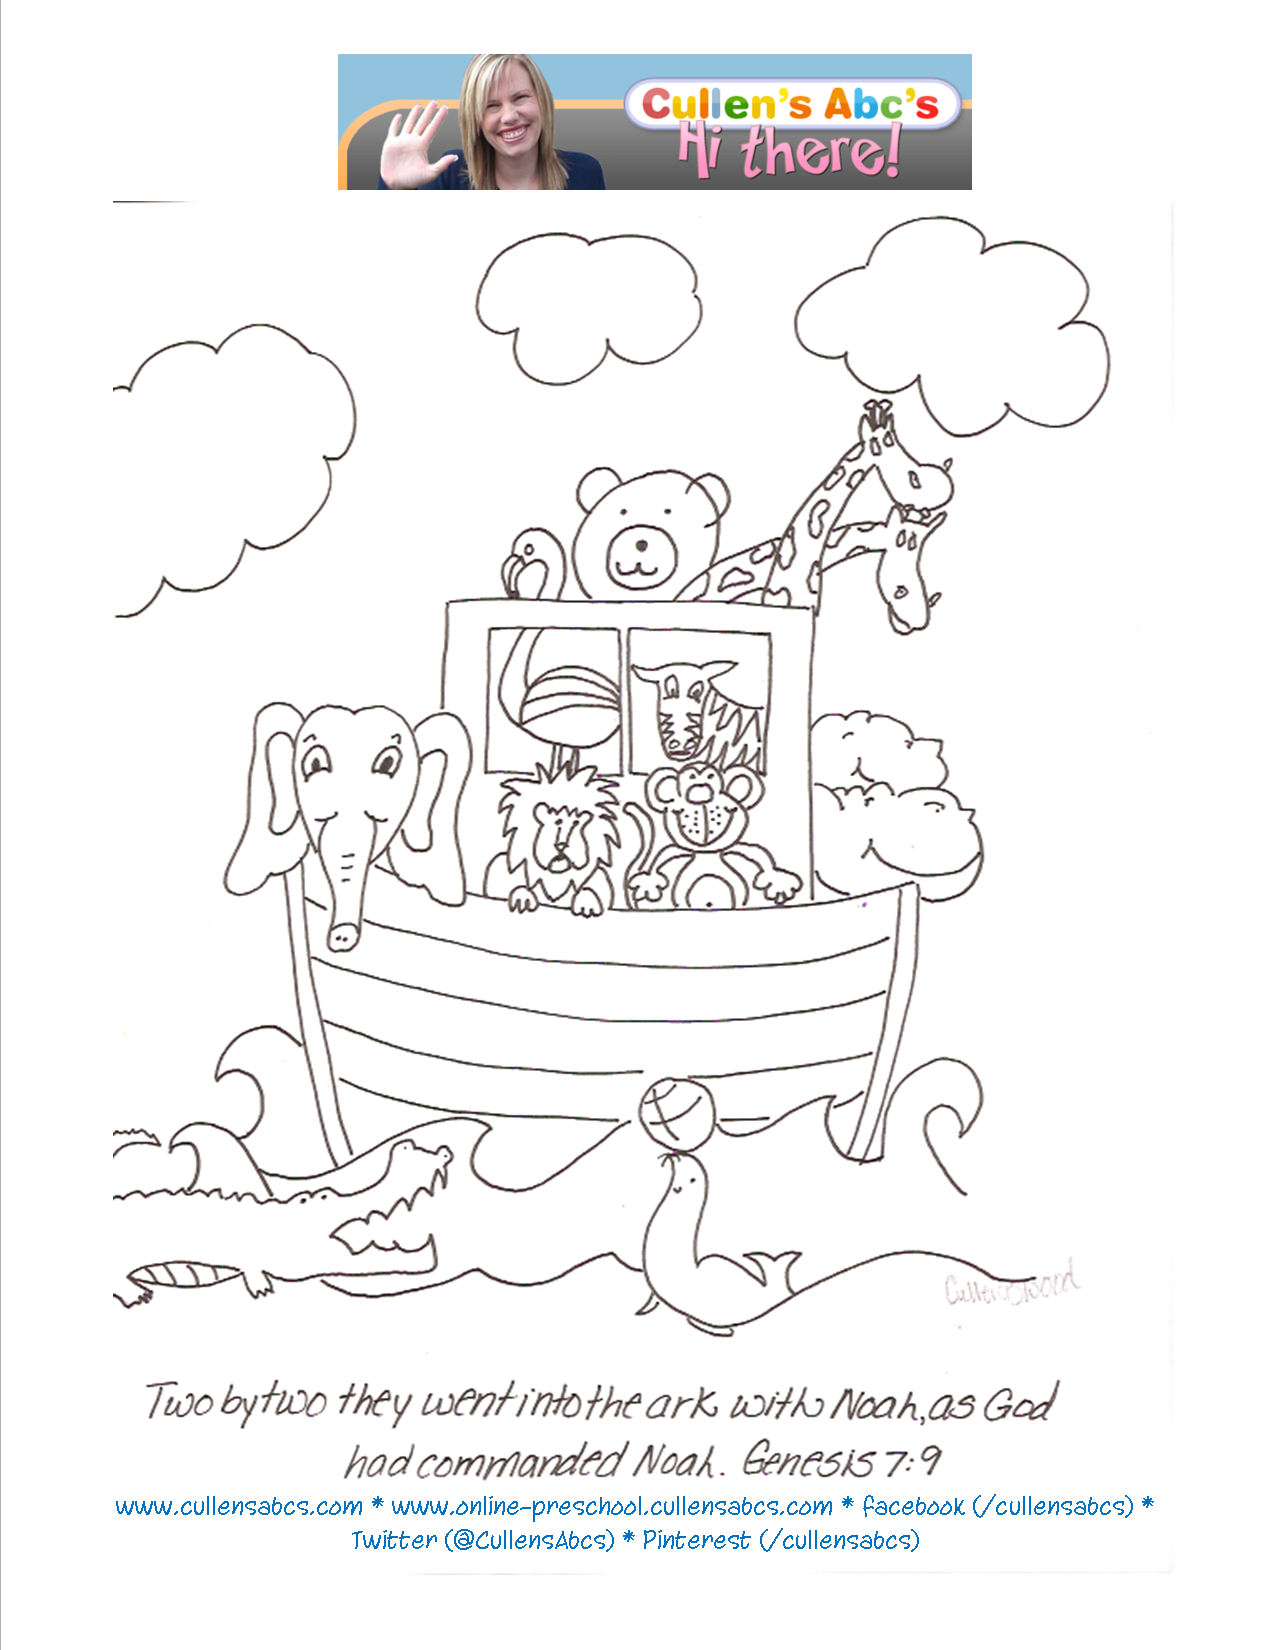 Noahs Ark Coloring Sheet You Can Have Children Color This Page And Start To Memorize The Bible Verse When Used Discuss Story With Child While